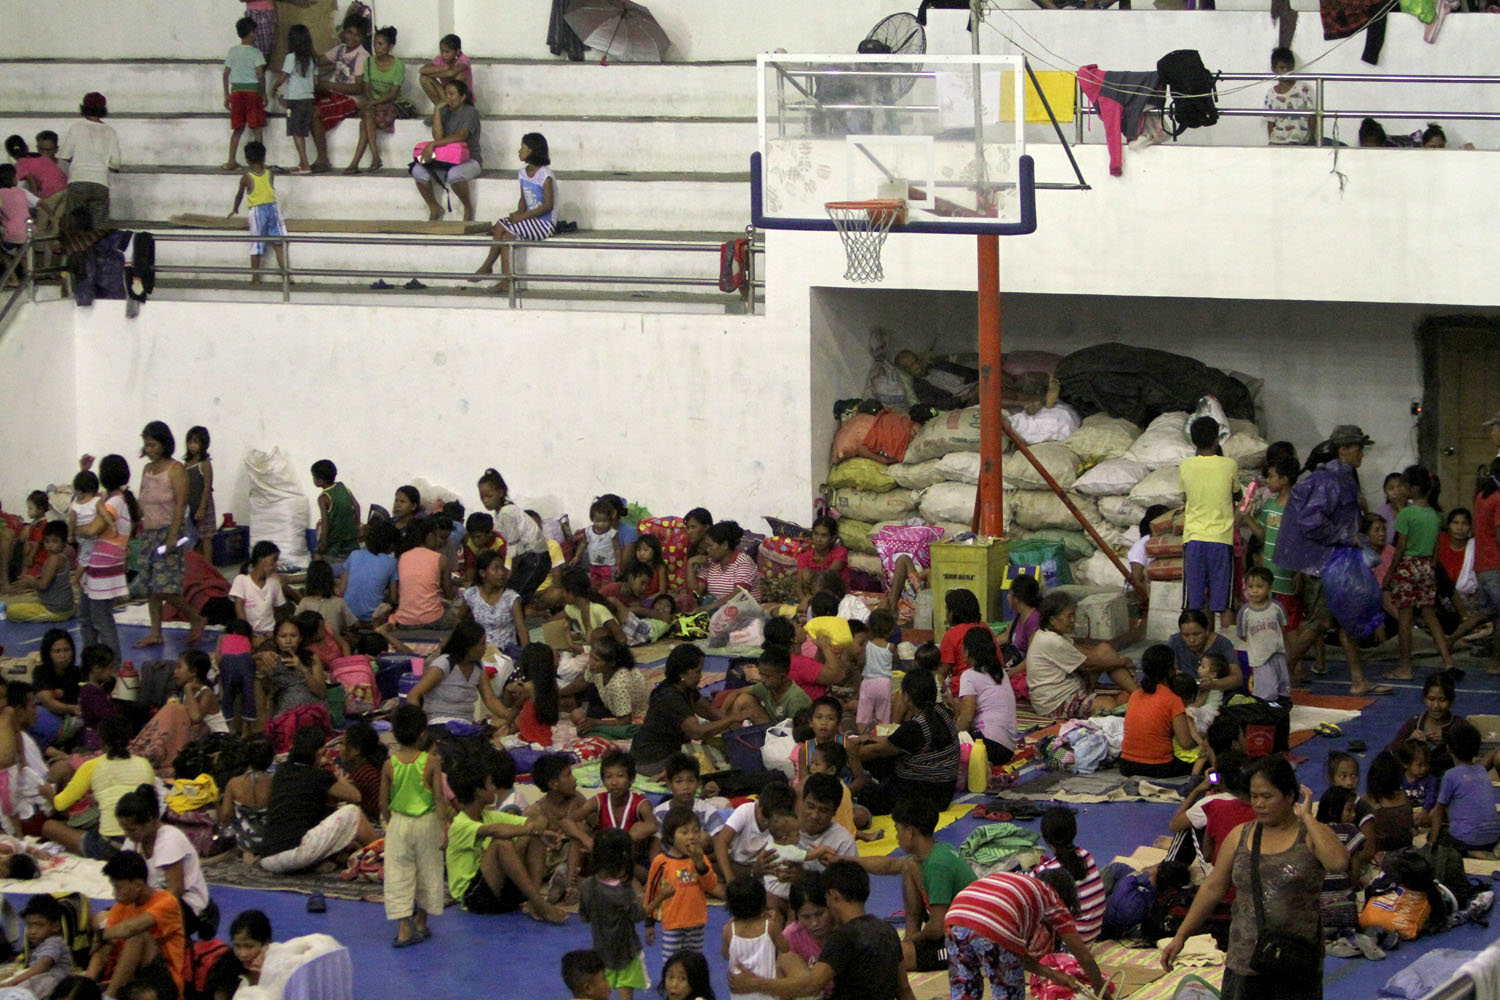 EVACUATED. More than 700 residents living along the shoreline take refuge in Alcala Gymnasium after preemptive evacuation due to Super Typhoon Lawin in Alcala town, Cagayan. Photo by Inoue Jaena/Rappler